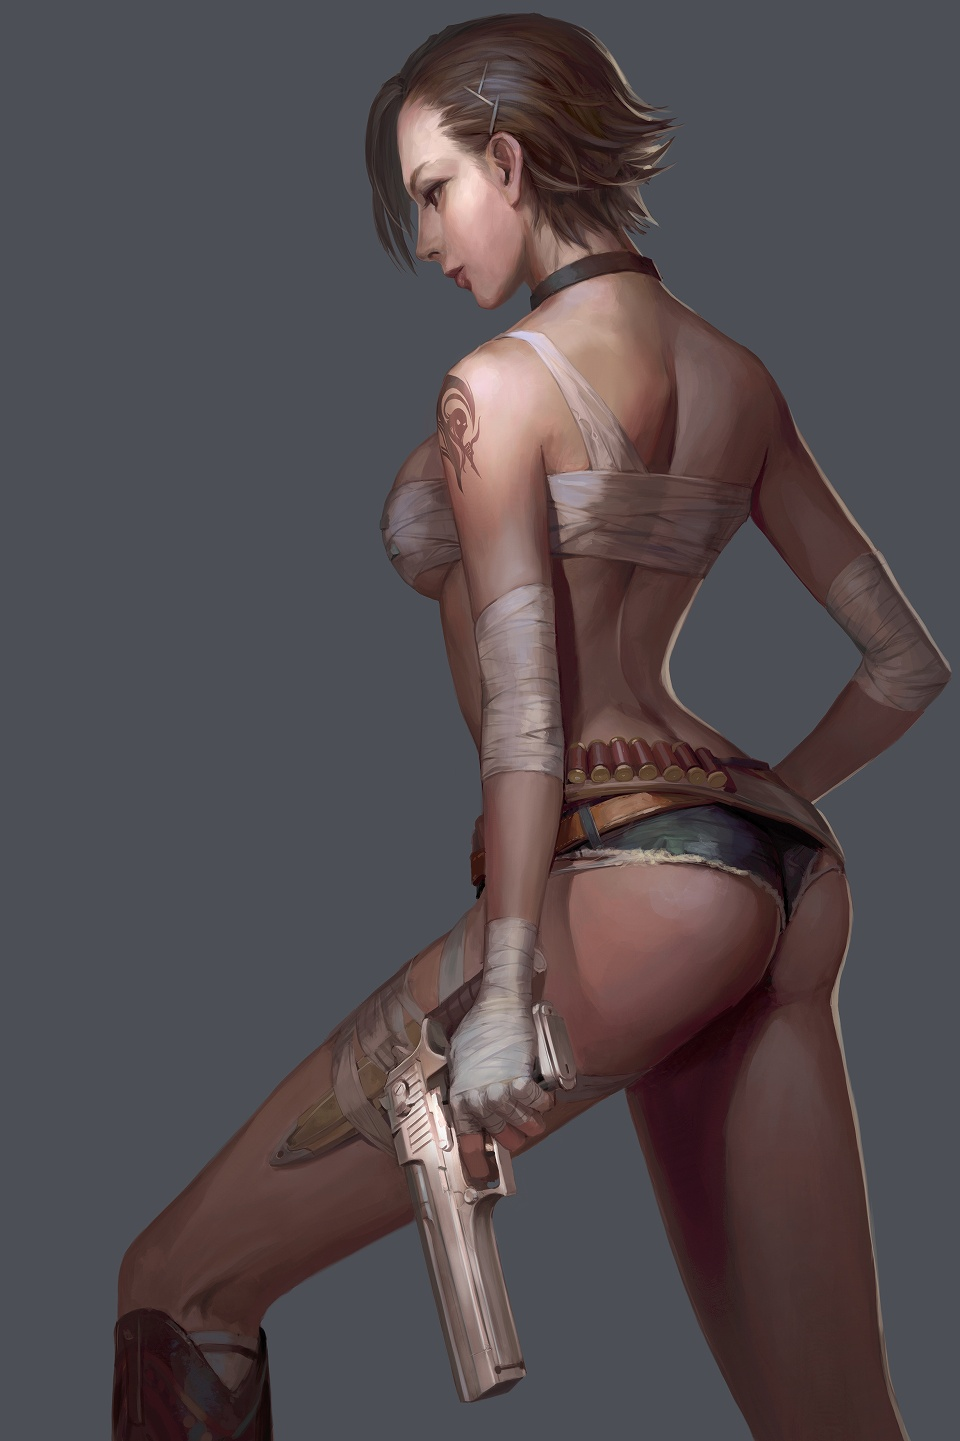 Nude dynasty warriors female characters nsfw gallery